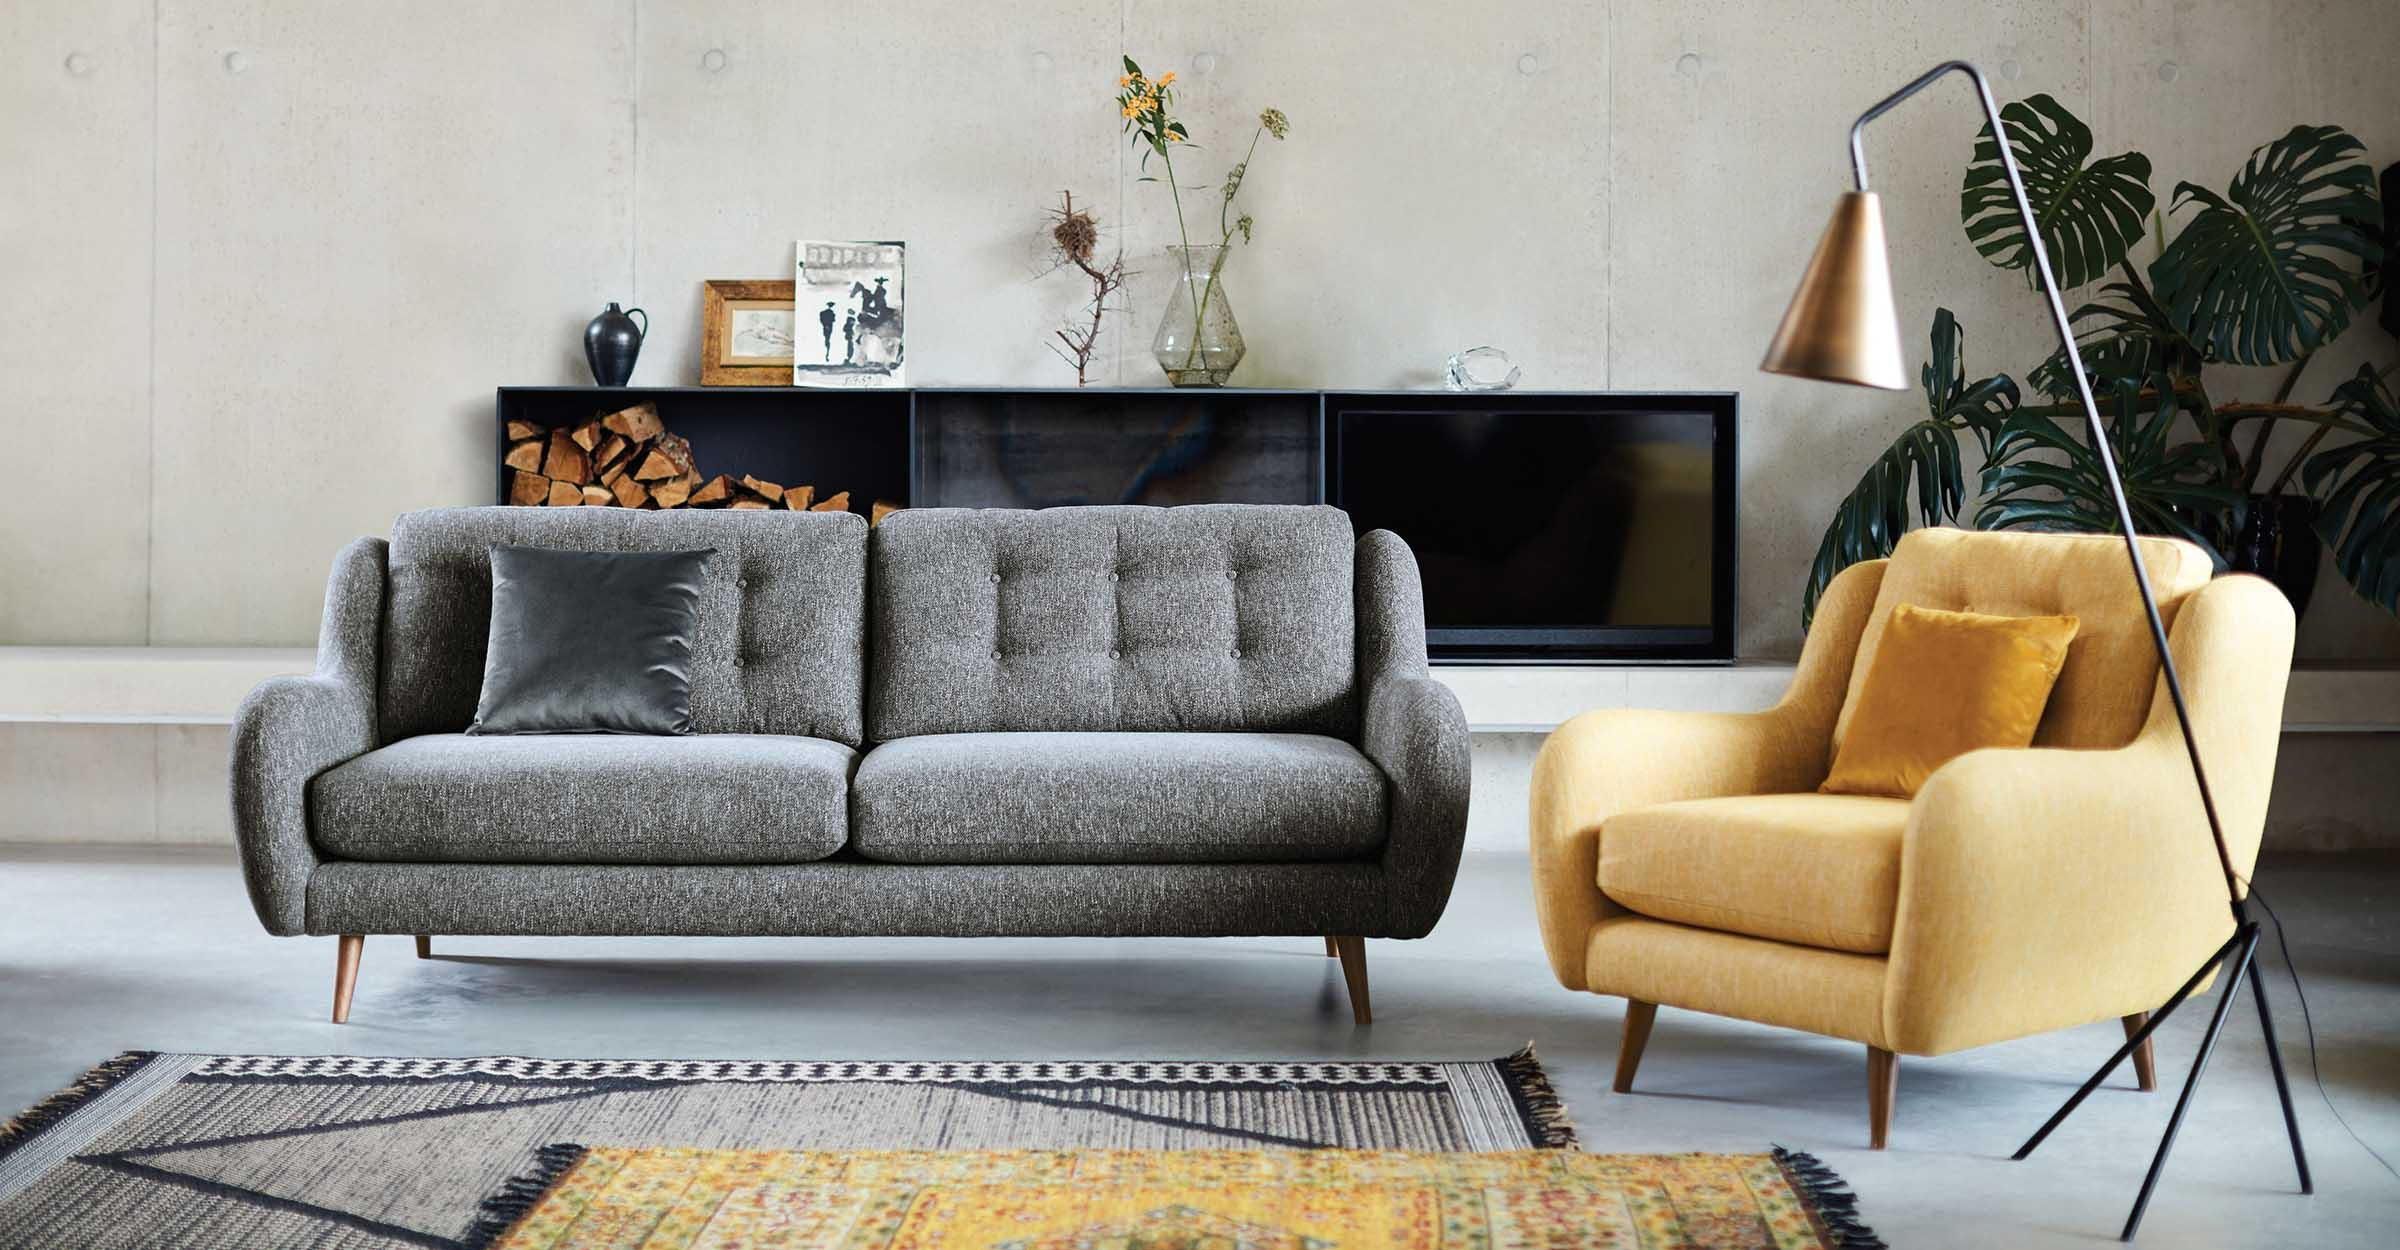 Making the right upholstery choice for your room